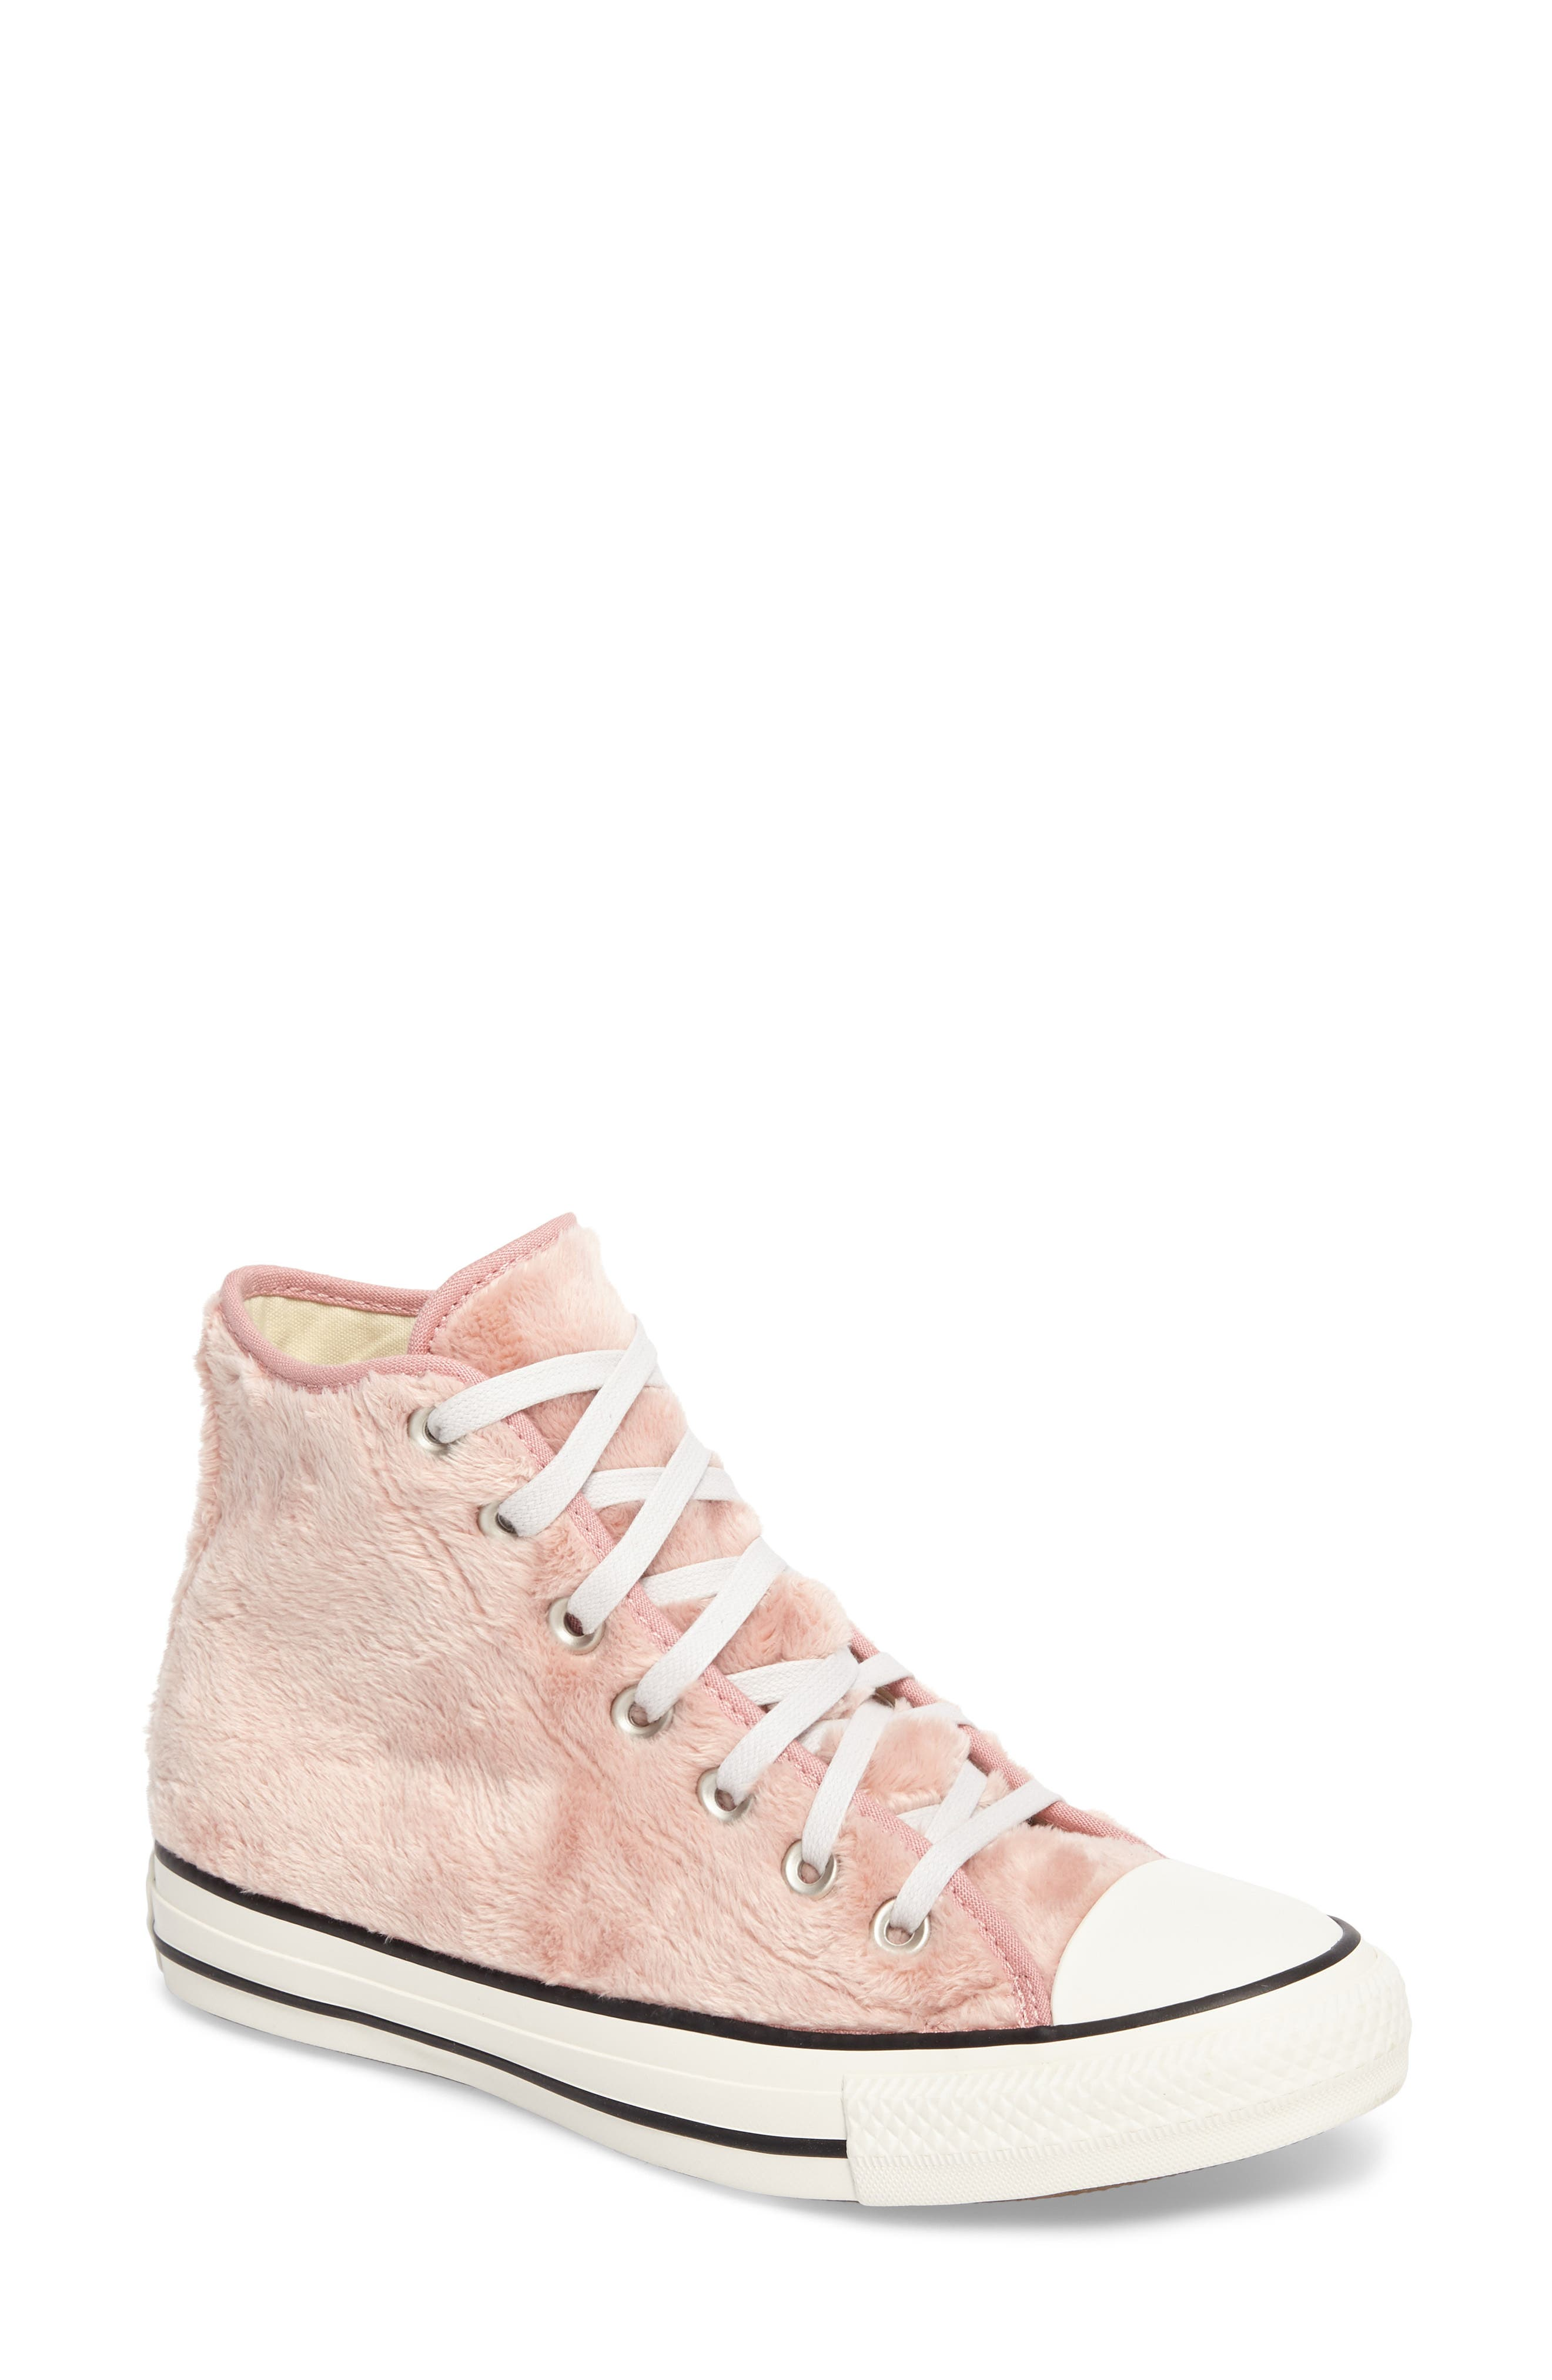 Alternate Image 1 Selected - Converse Chuck Taylor® All Star® Faux Fur High Top Sneakers (Women)